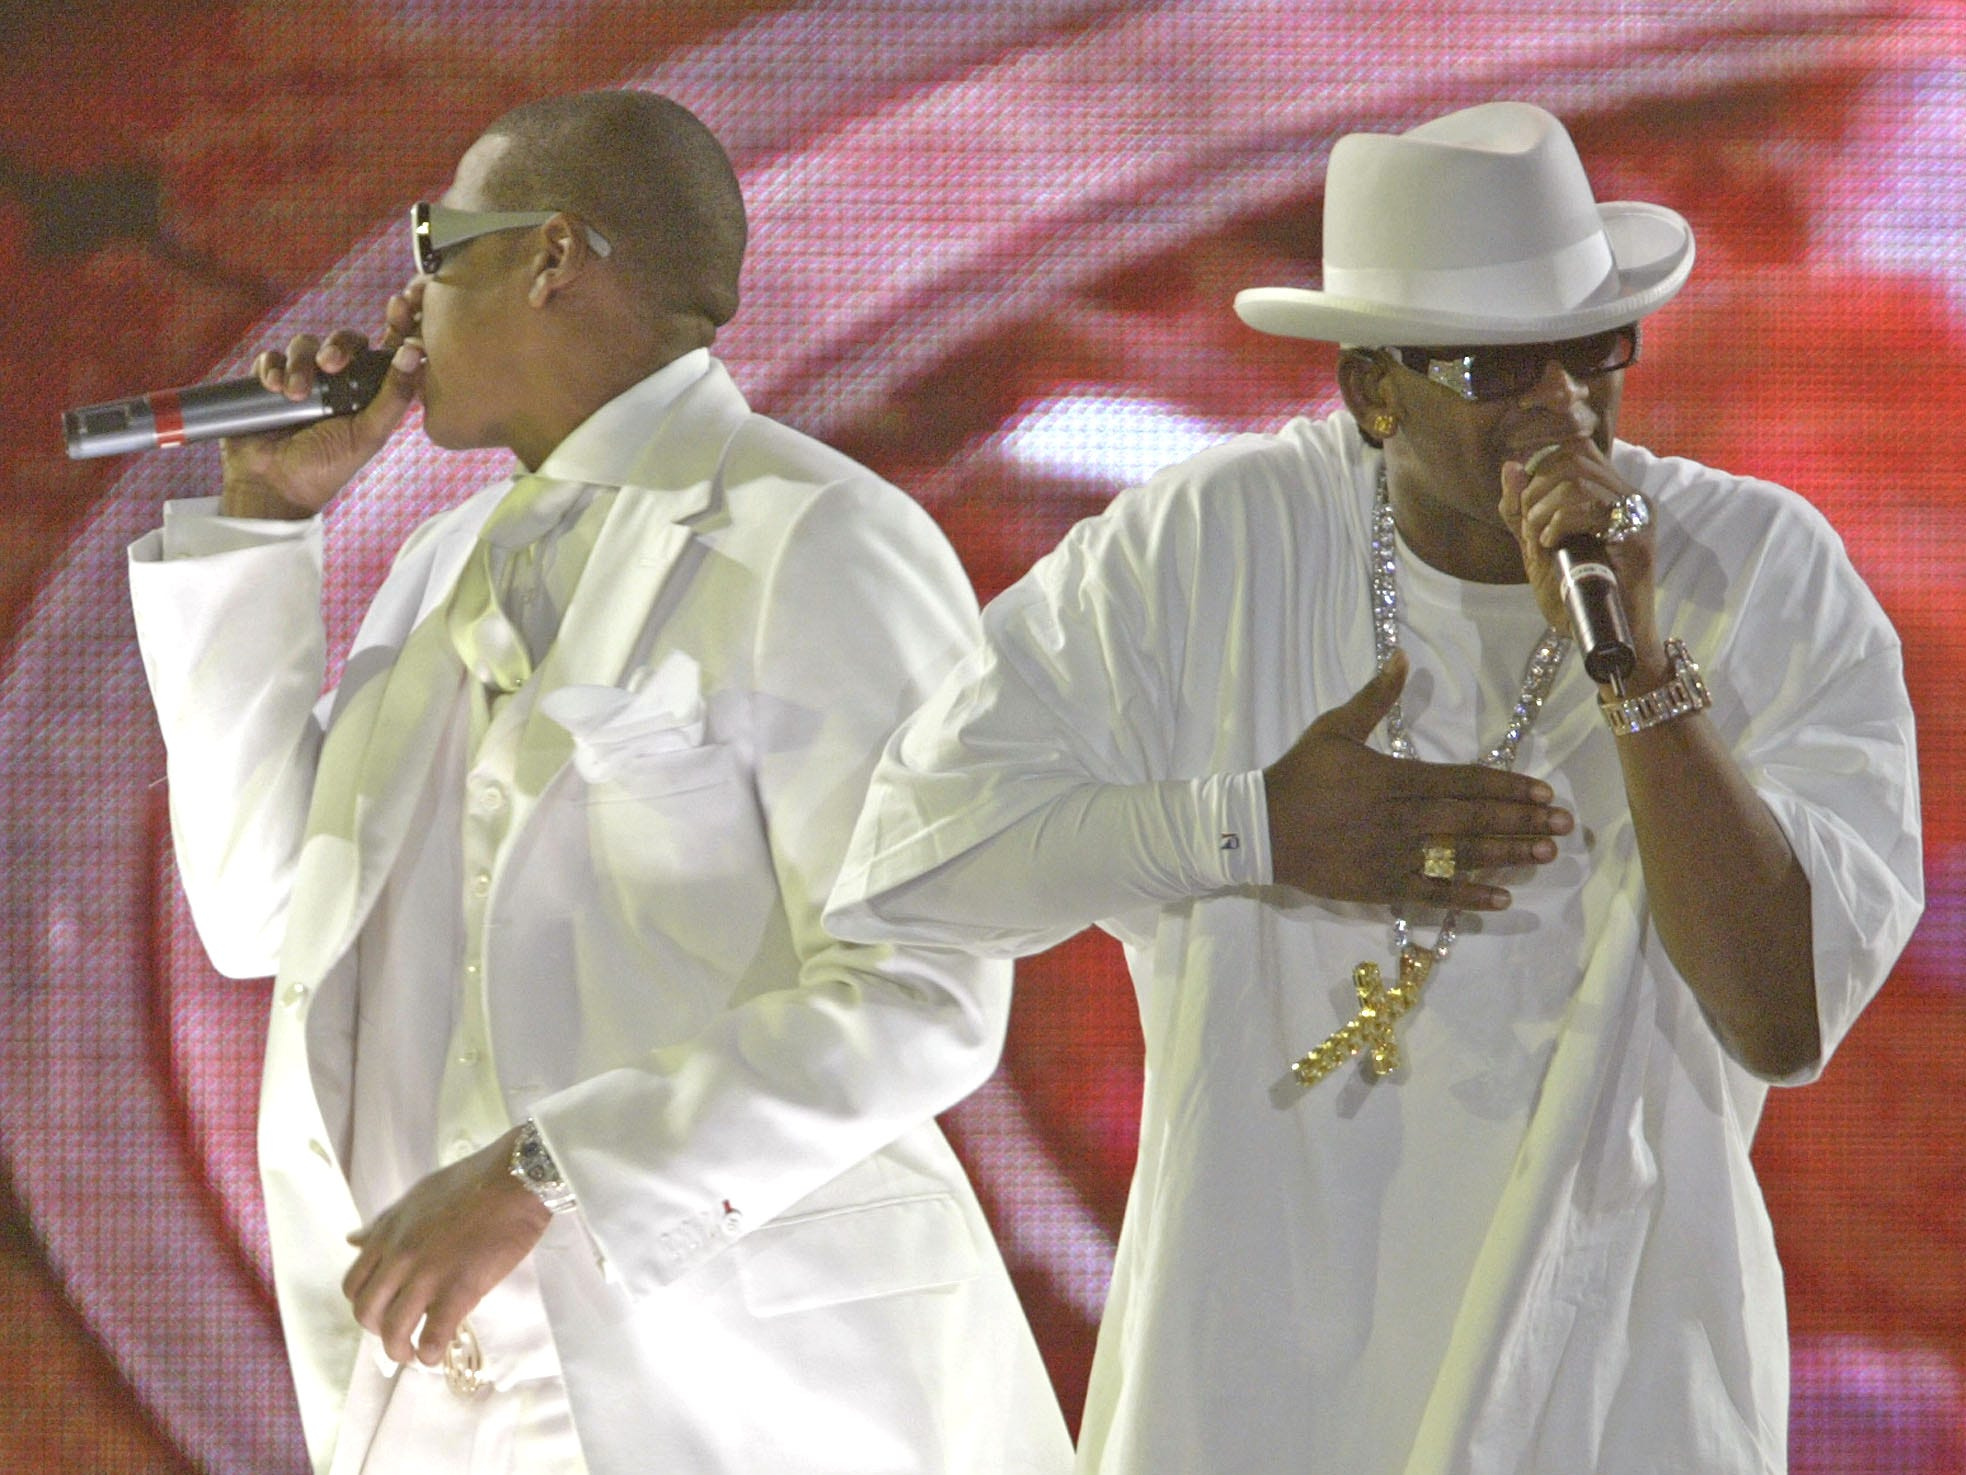 R. Kelly, right, and Jay-Z perform at the Allstate Arena in Rosemont, Ill. at the first stop in their Best of Both Worlds Tour, on Sept. 30, 2004.